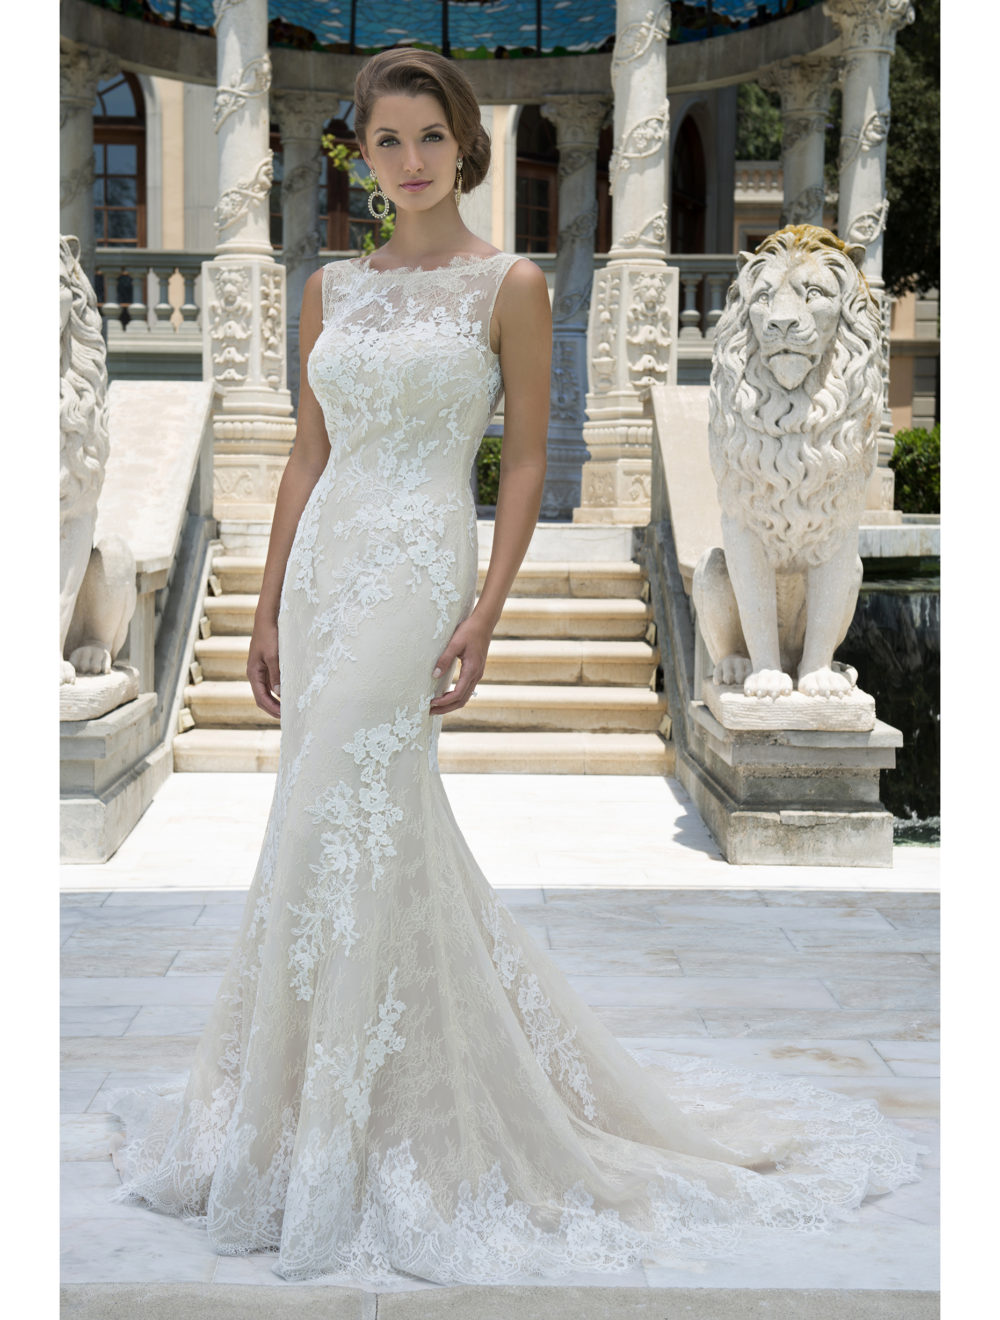 Best Bridal & Wedding Dress Shop Near Me Michigan